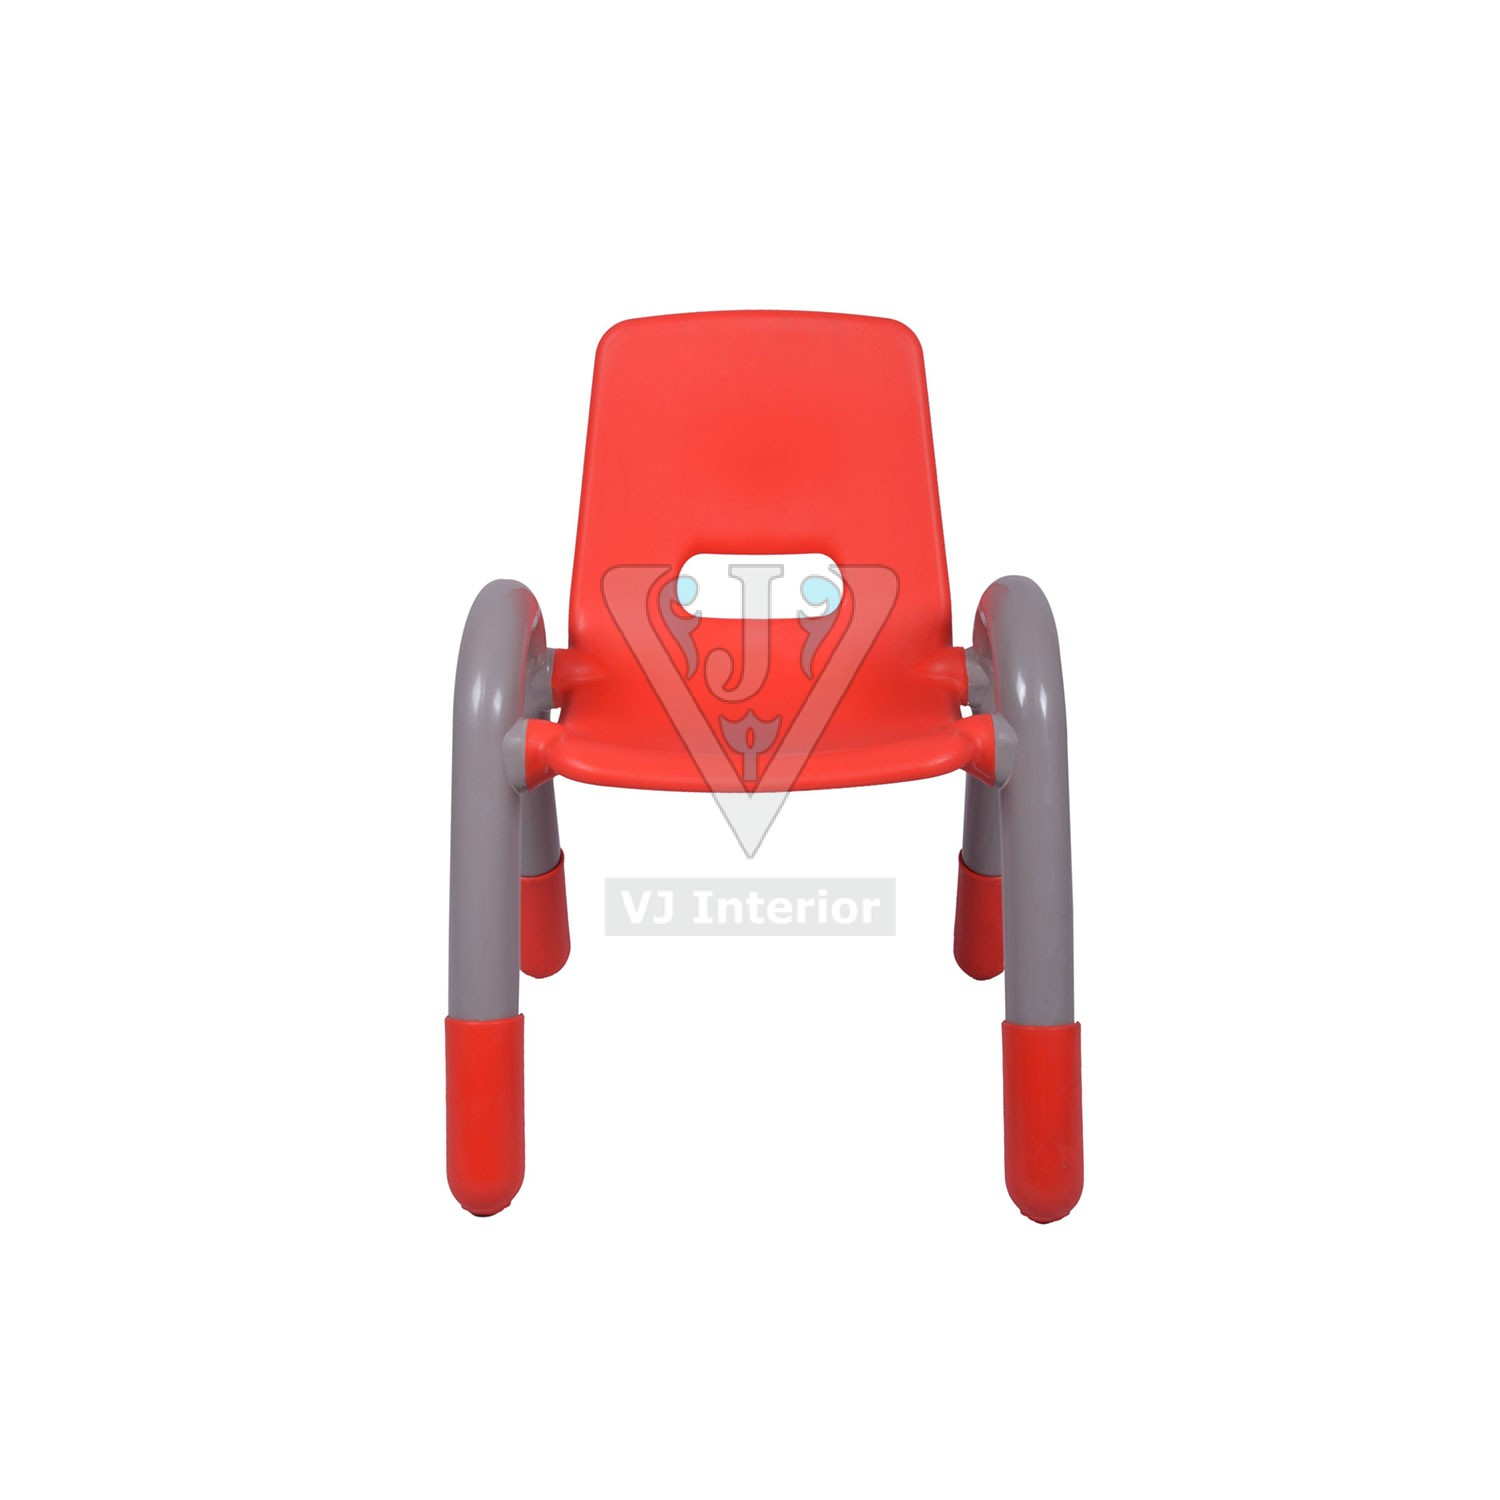 THE VOLVER ENGINEERING PLASTIC KIDS CHAIR RED VJ Interior